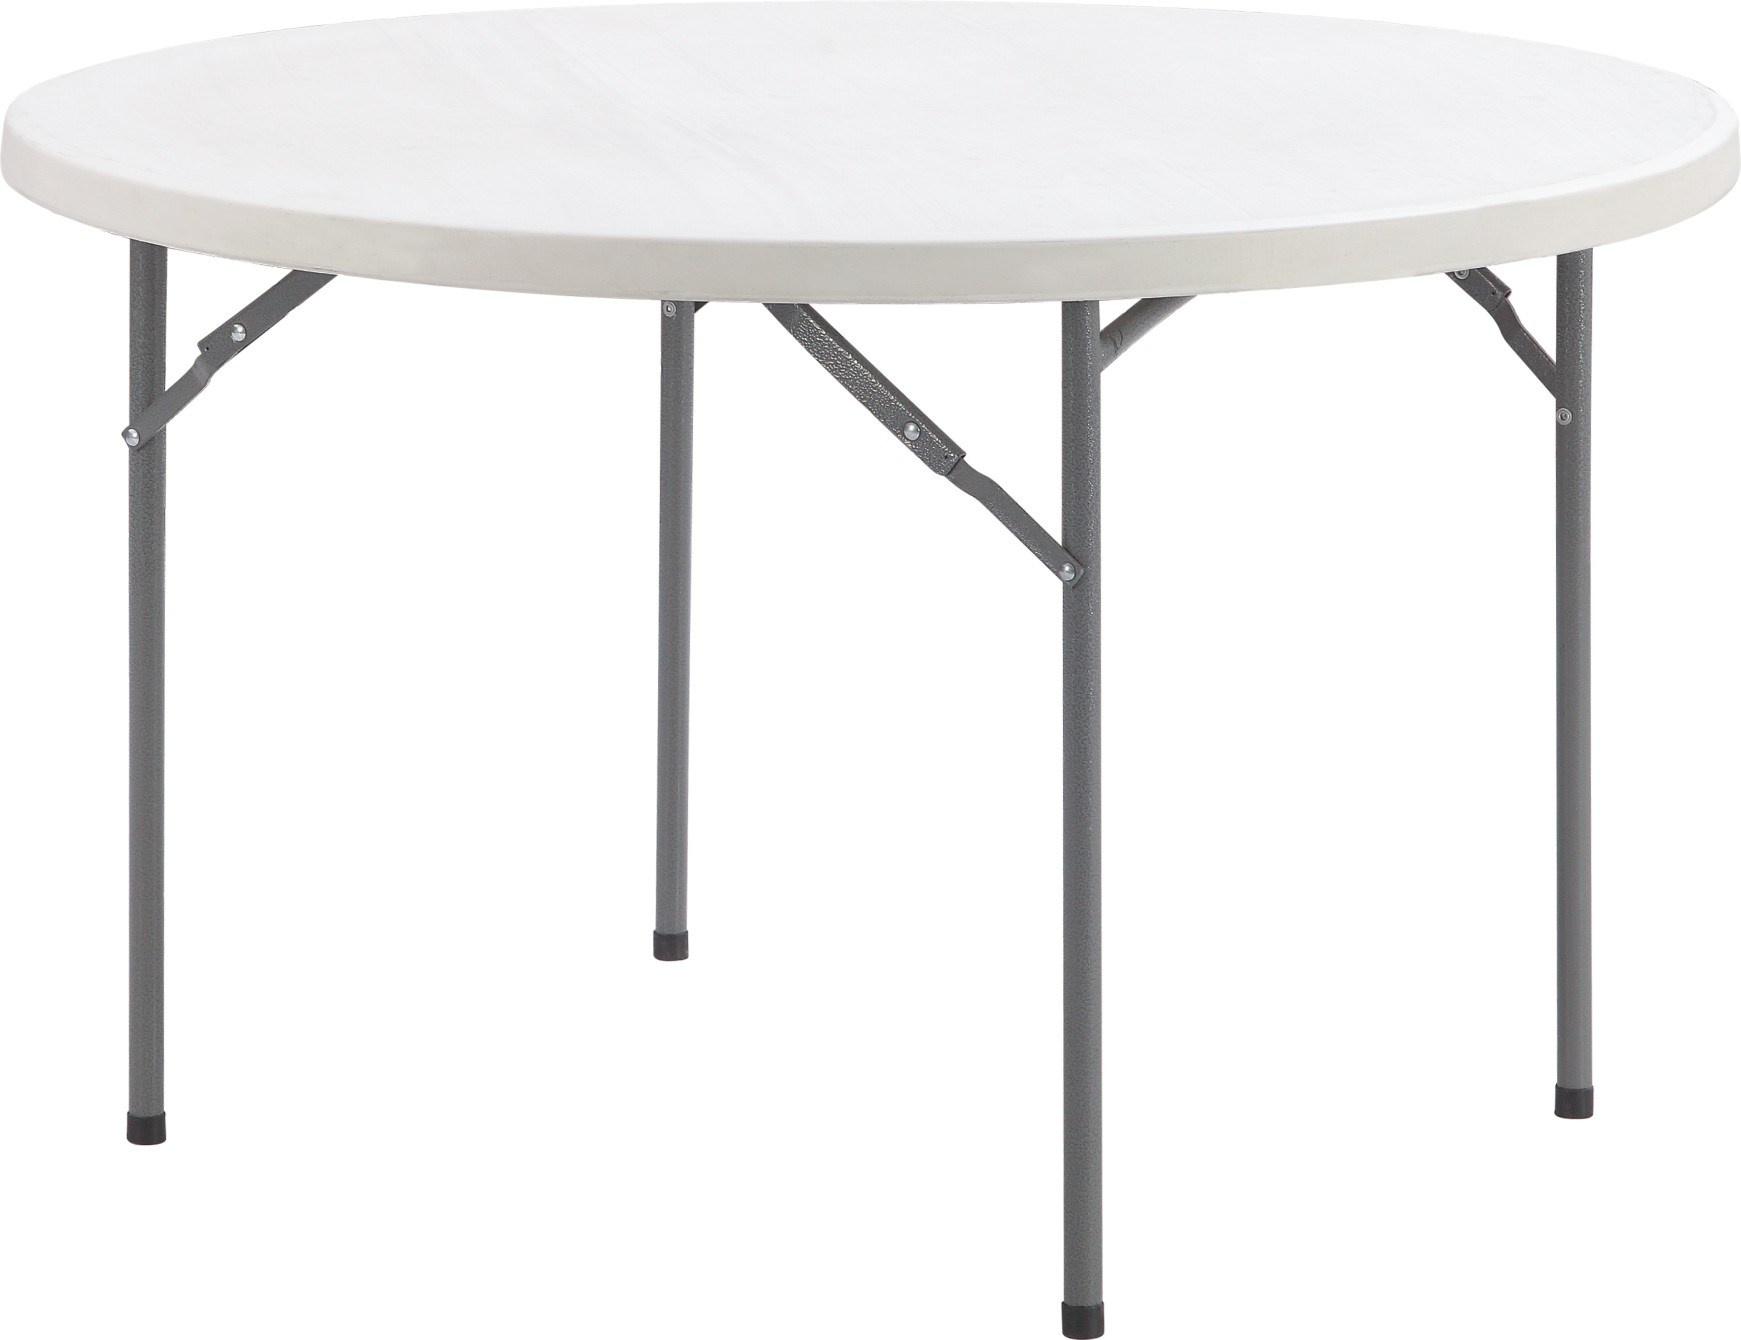 - China 1.22m Plastic Folding Round Small Table Suit For 4 Chairs